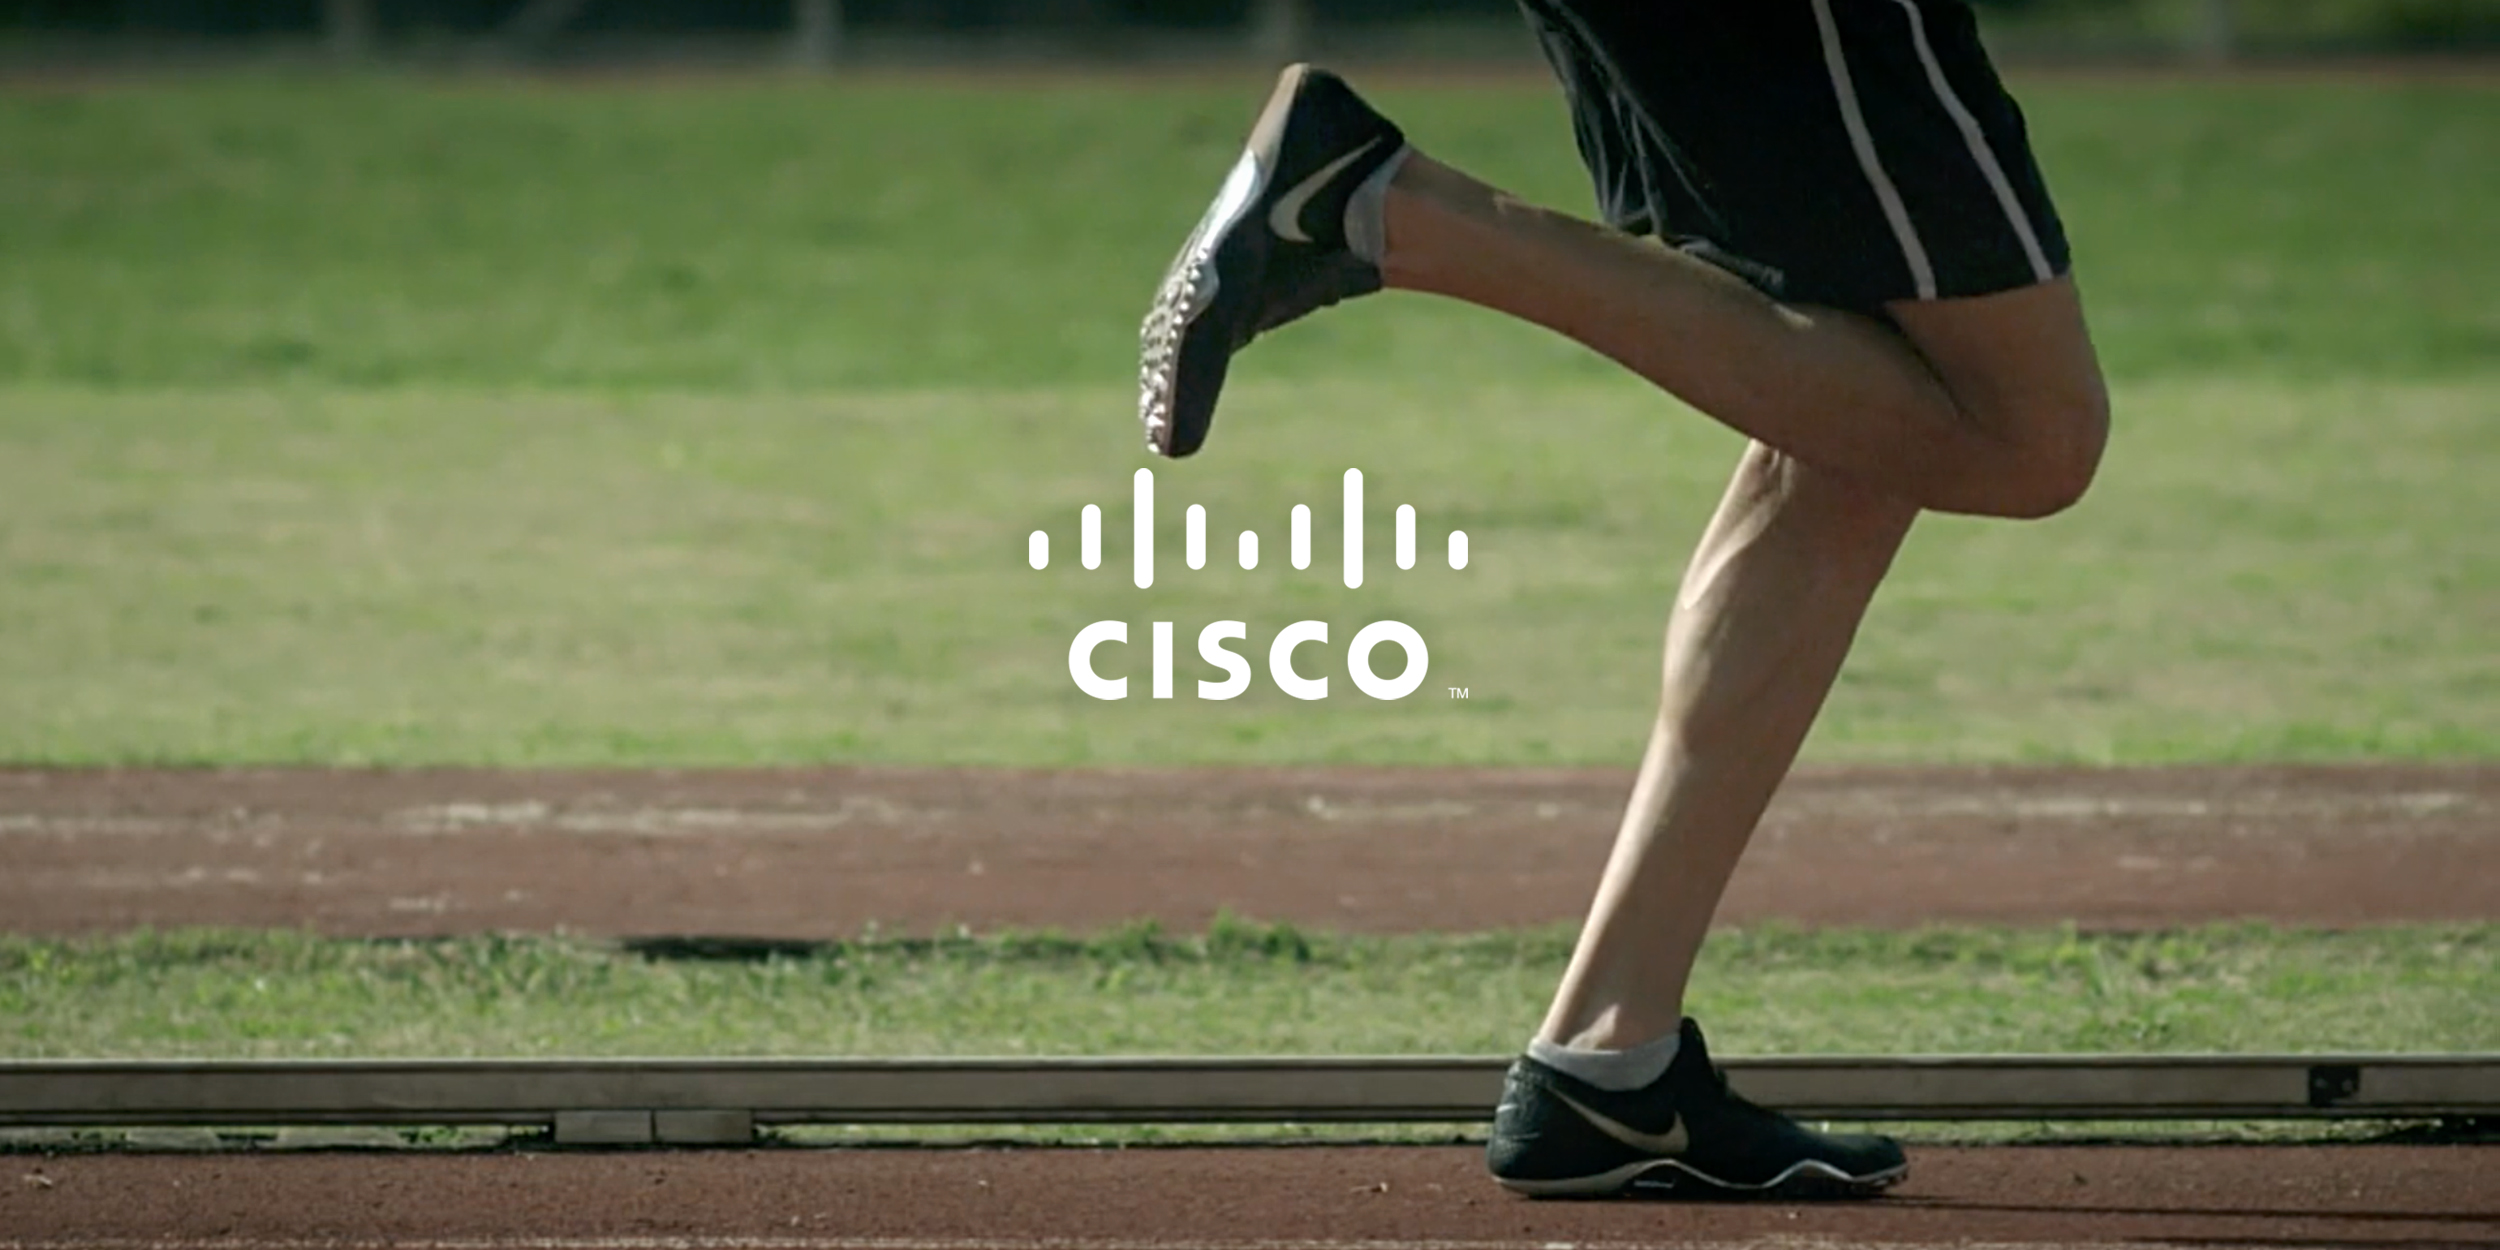 cisco_sports_frontpage.jpg